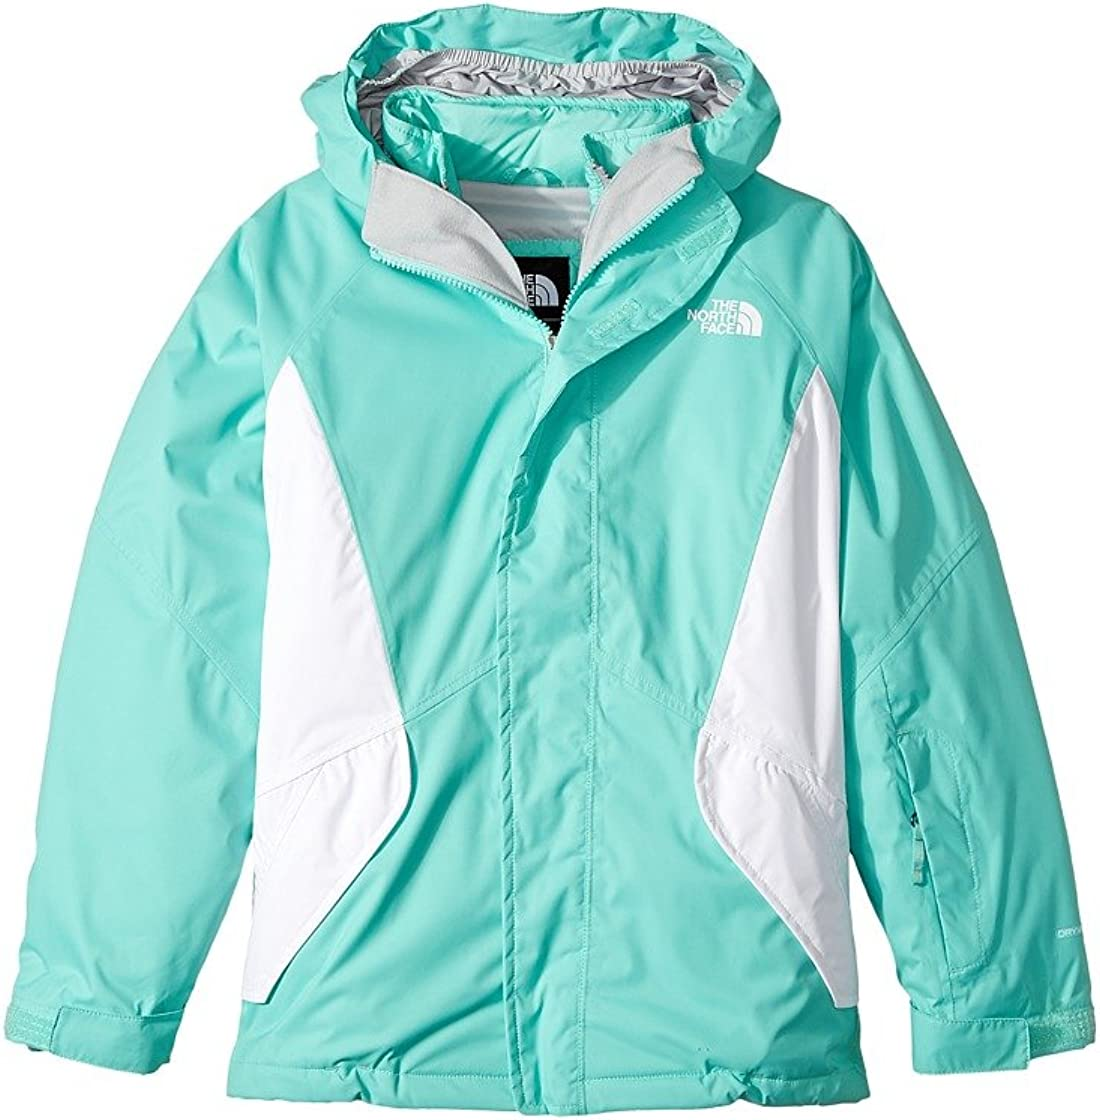 The North Face specialty shop Youth Girl's Bermuda Kira Green Max 55% OFF Jacket TriClimate